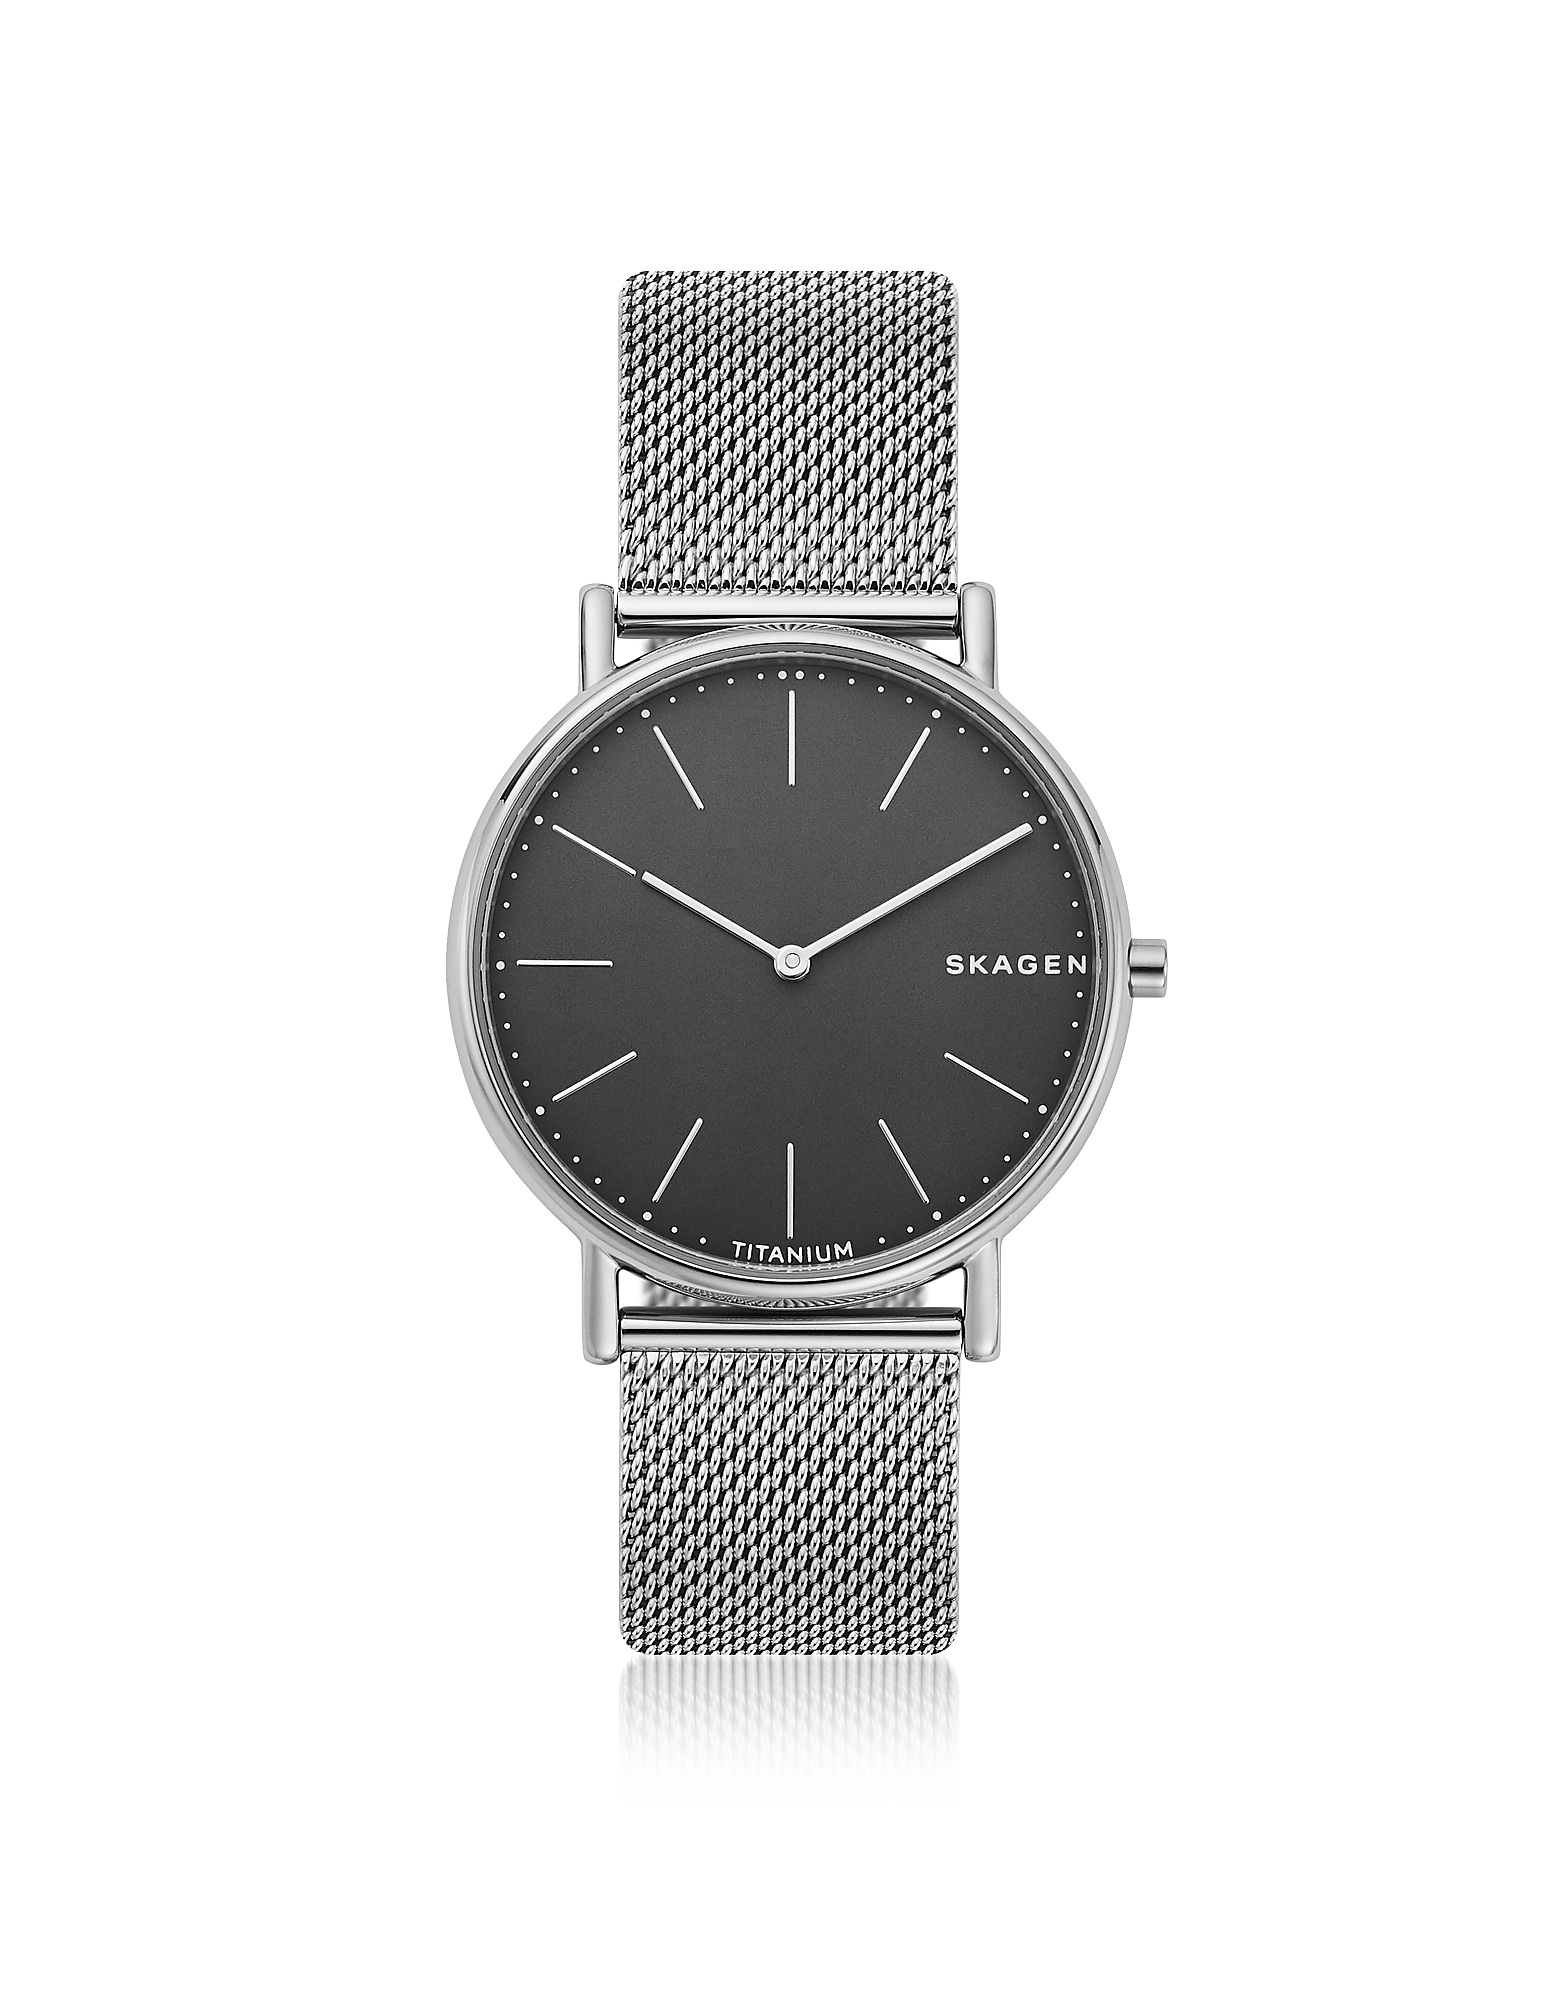 Skagen Designer Men's Watches, SKW6483 Signatur slim Watch